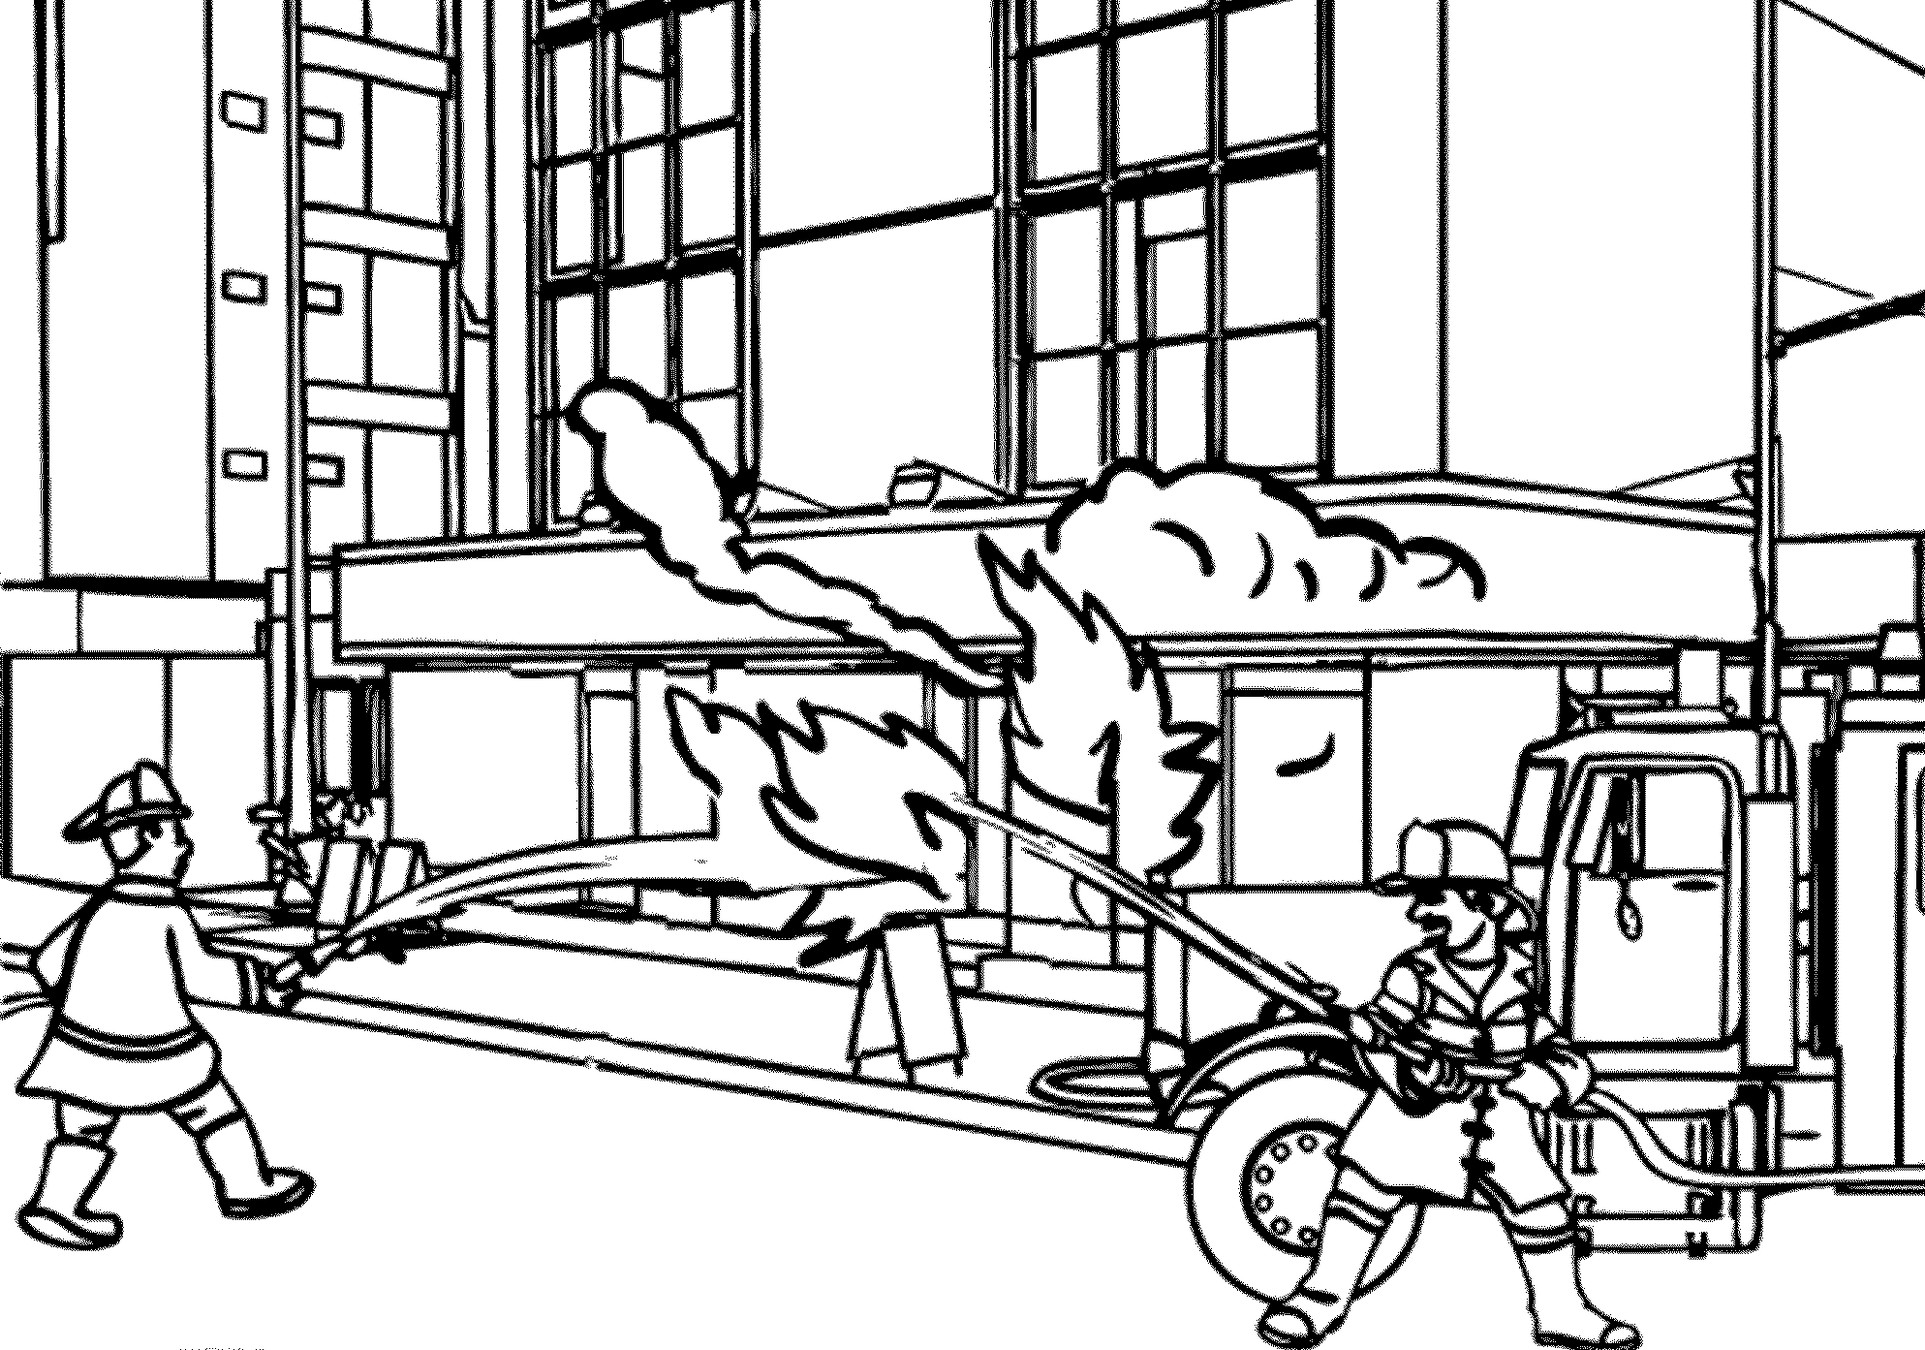 Fireman Rescue Building Coloring Pages - Coloring Pages